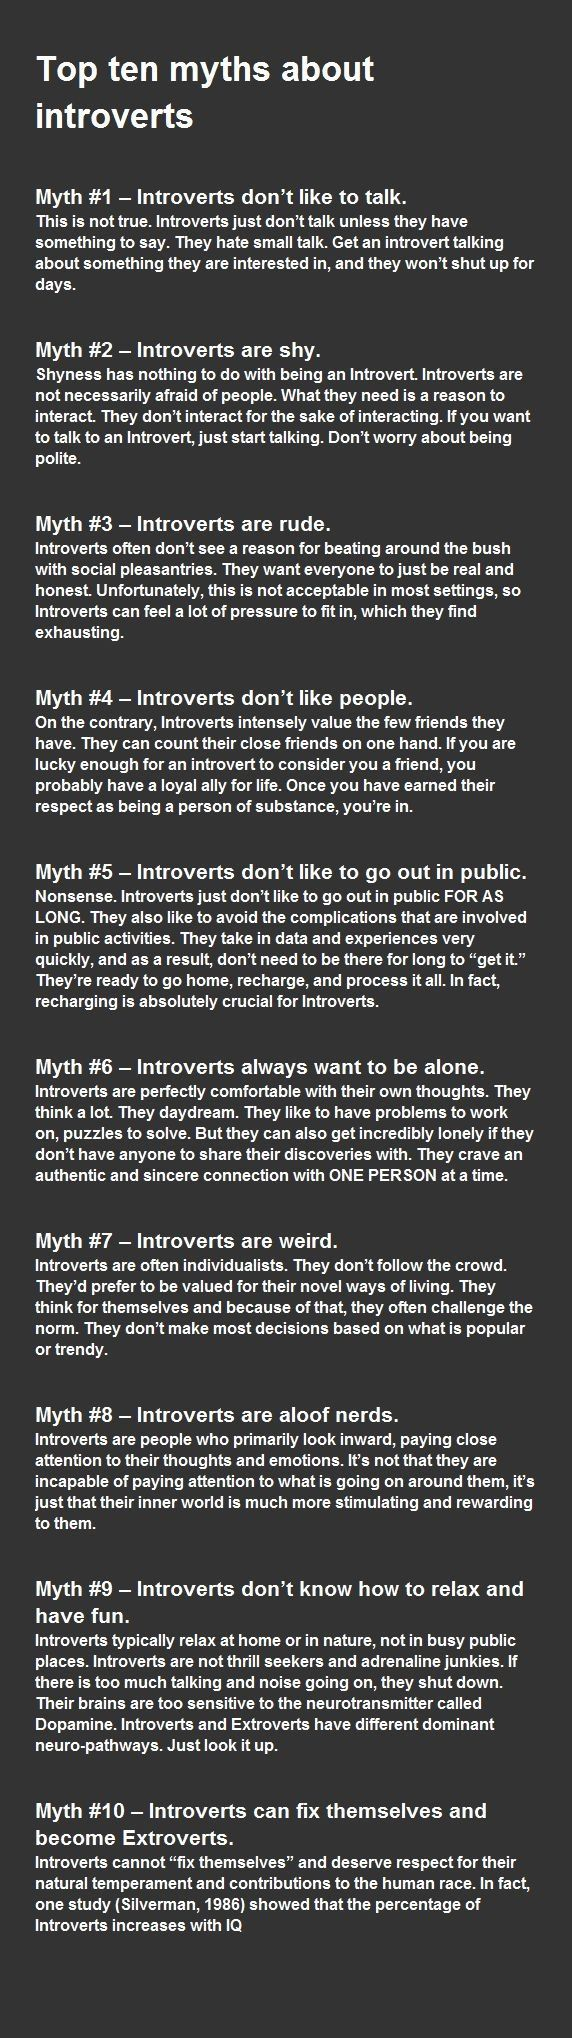 I never realized how much of an introvert I really am until recently. When I read descriptions like these, I can't believe how well I relate. It's like someone opened my brain and took incredible notes of what they saw!